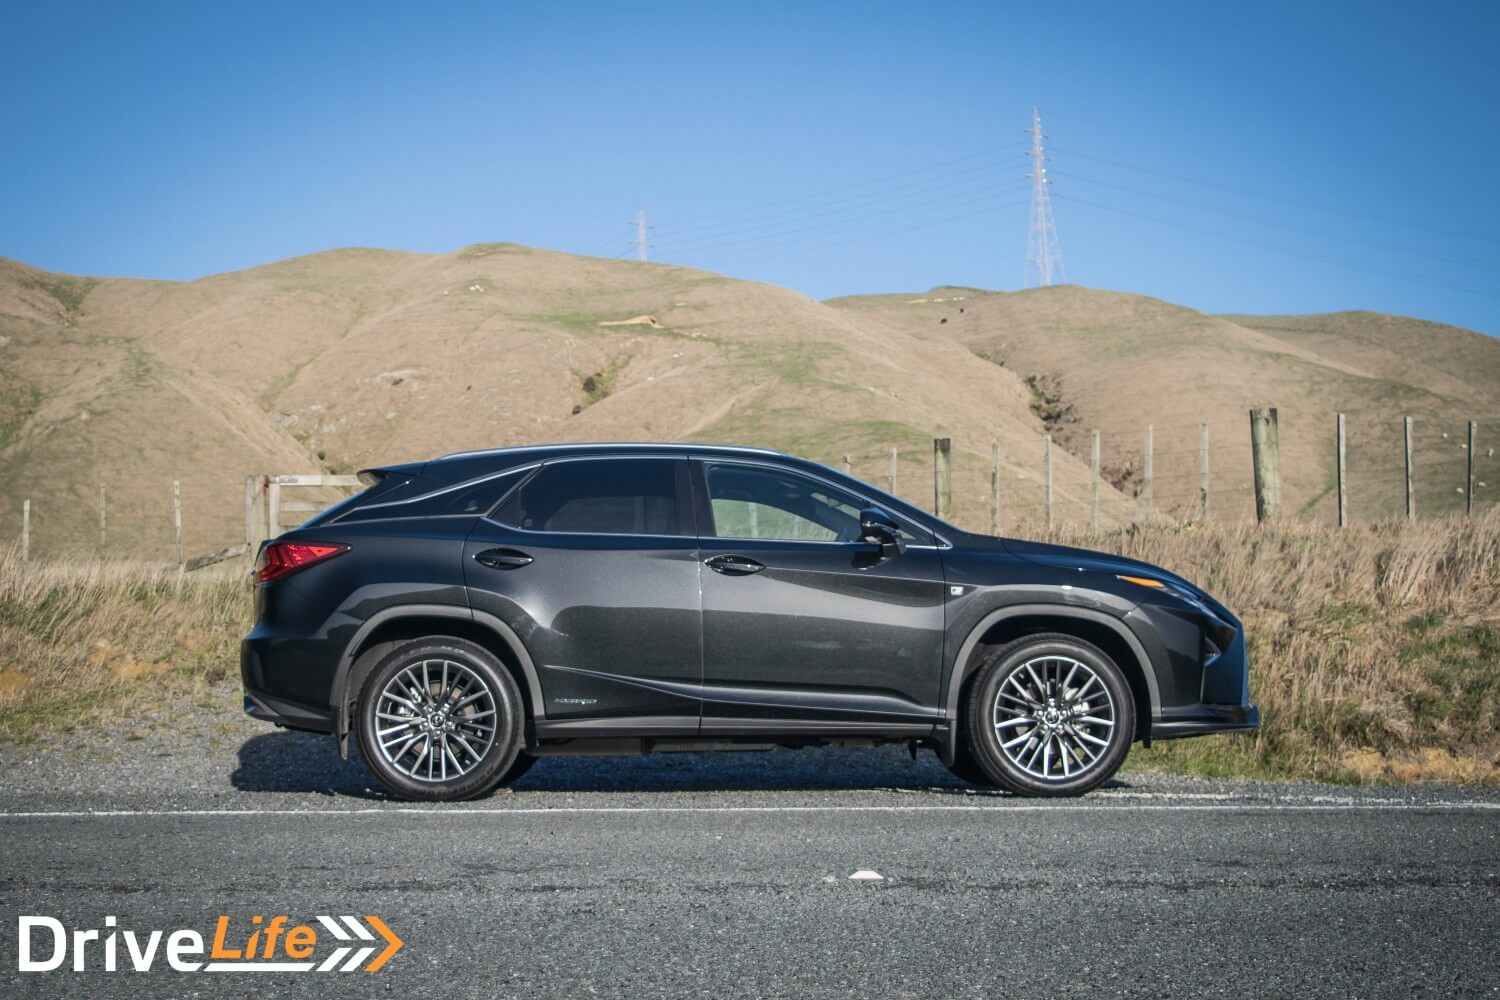 Drive-Life-NZ-Car-Review-Lexus-RX450h-F-Sport-2016-09